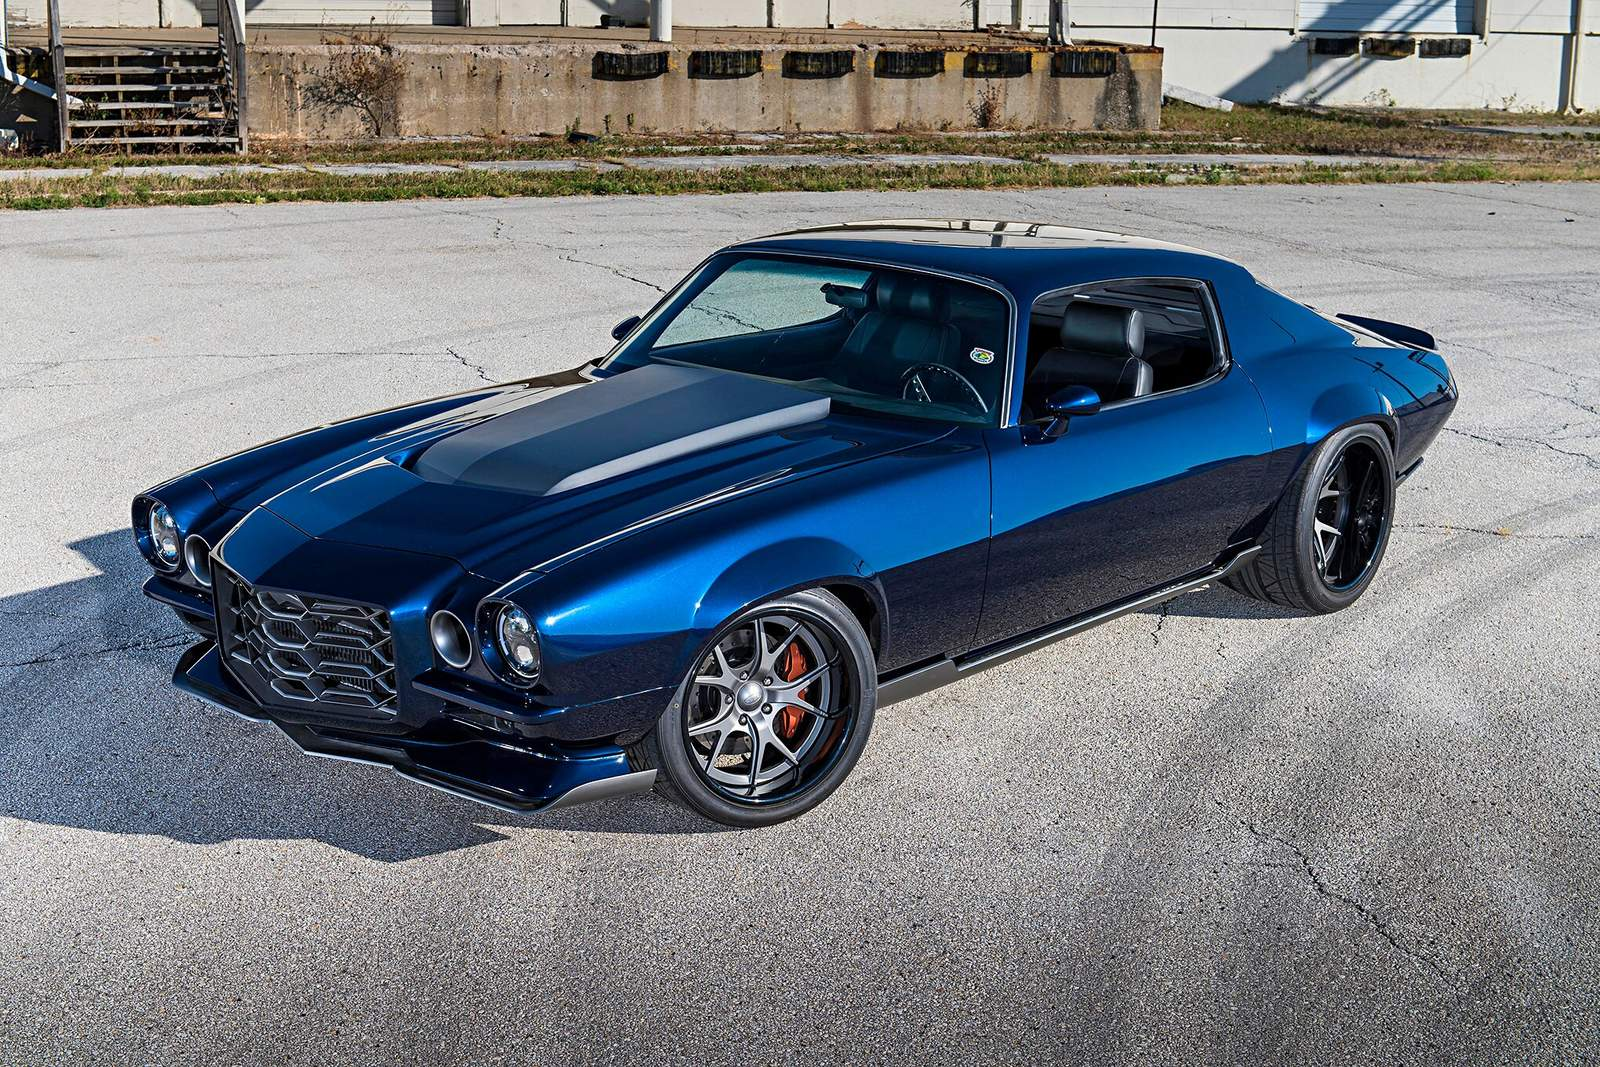 http://uploads.bmxmuseum.com/user-images/214141/001-1971-camaro-twin-turbo-pro-touring-ls5de6a6bf37.jpg